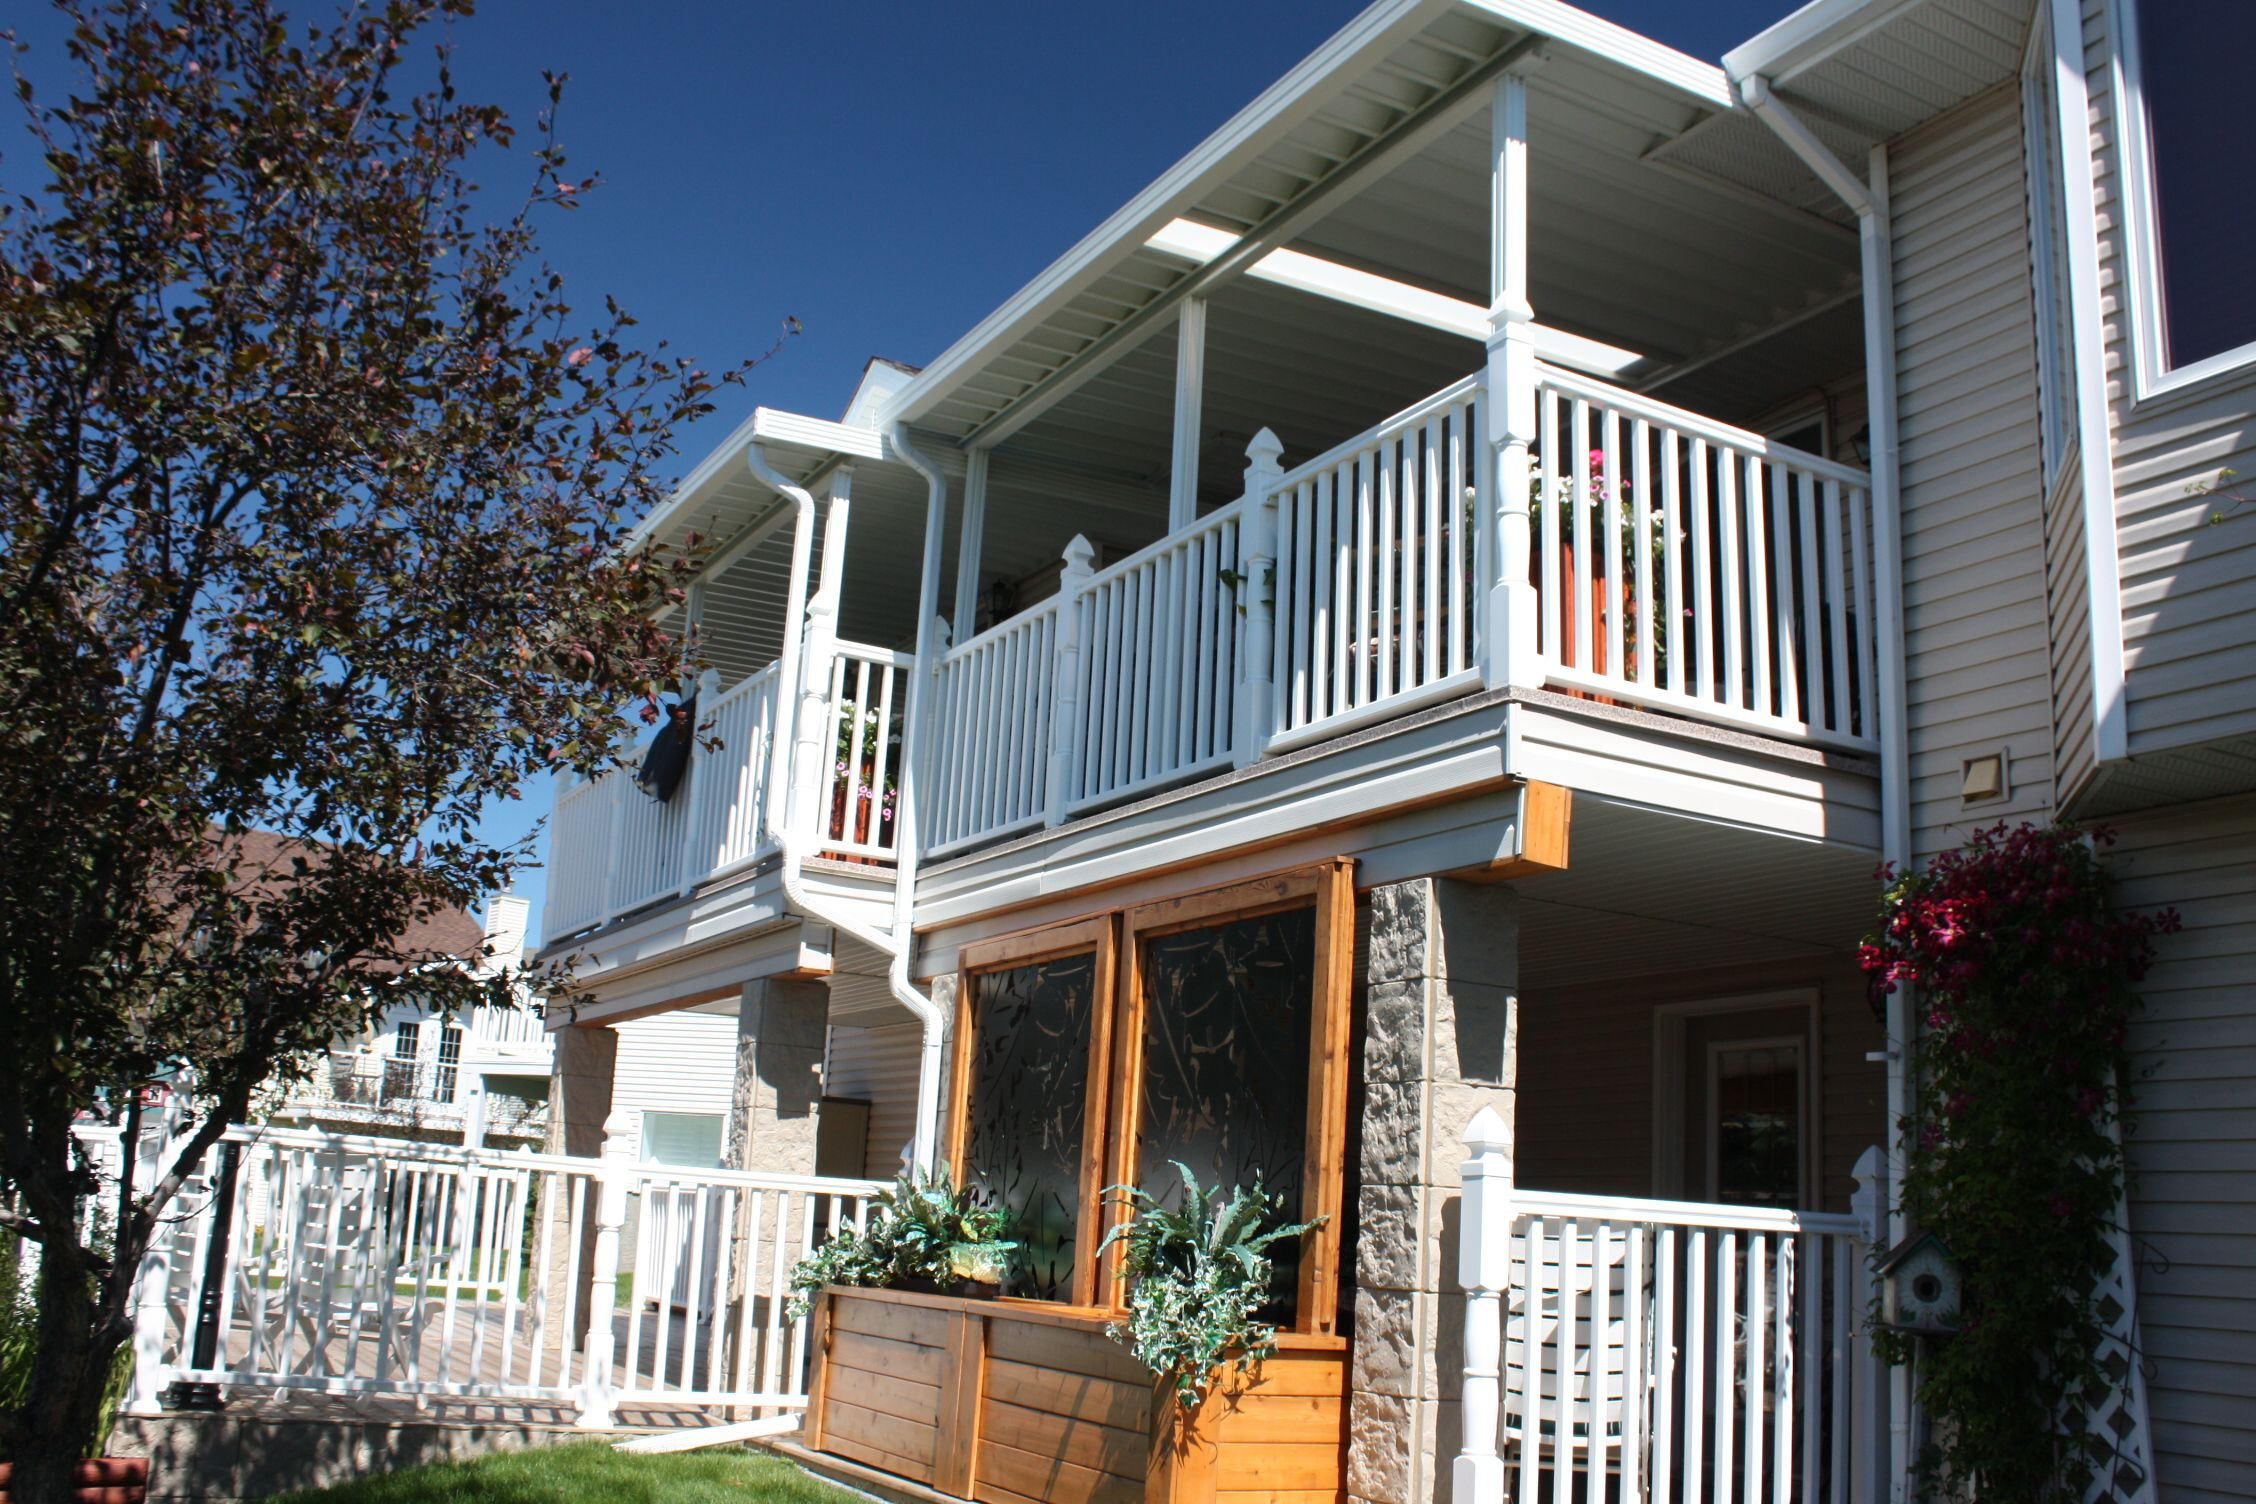 Calgary Patio Covers | Covered patio, Patio, House styles